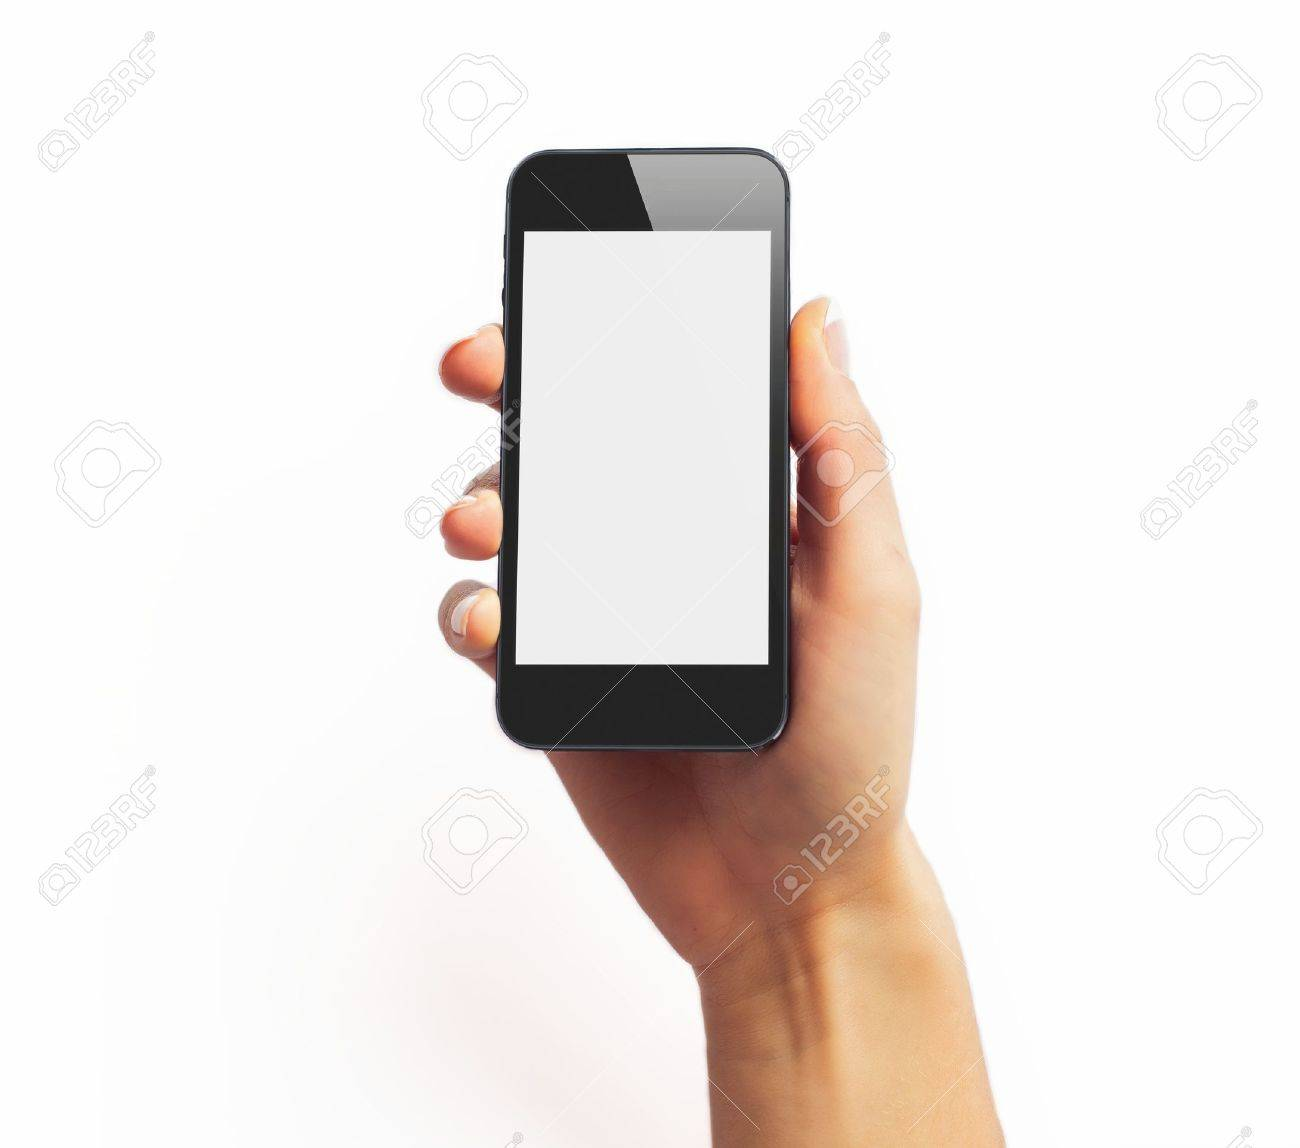 Black smartphone in hand with empty screen Stock Photo - 17243379